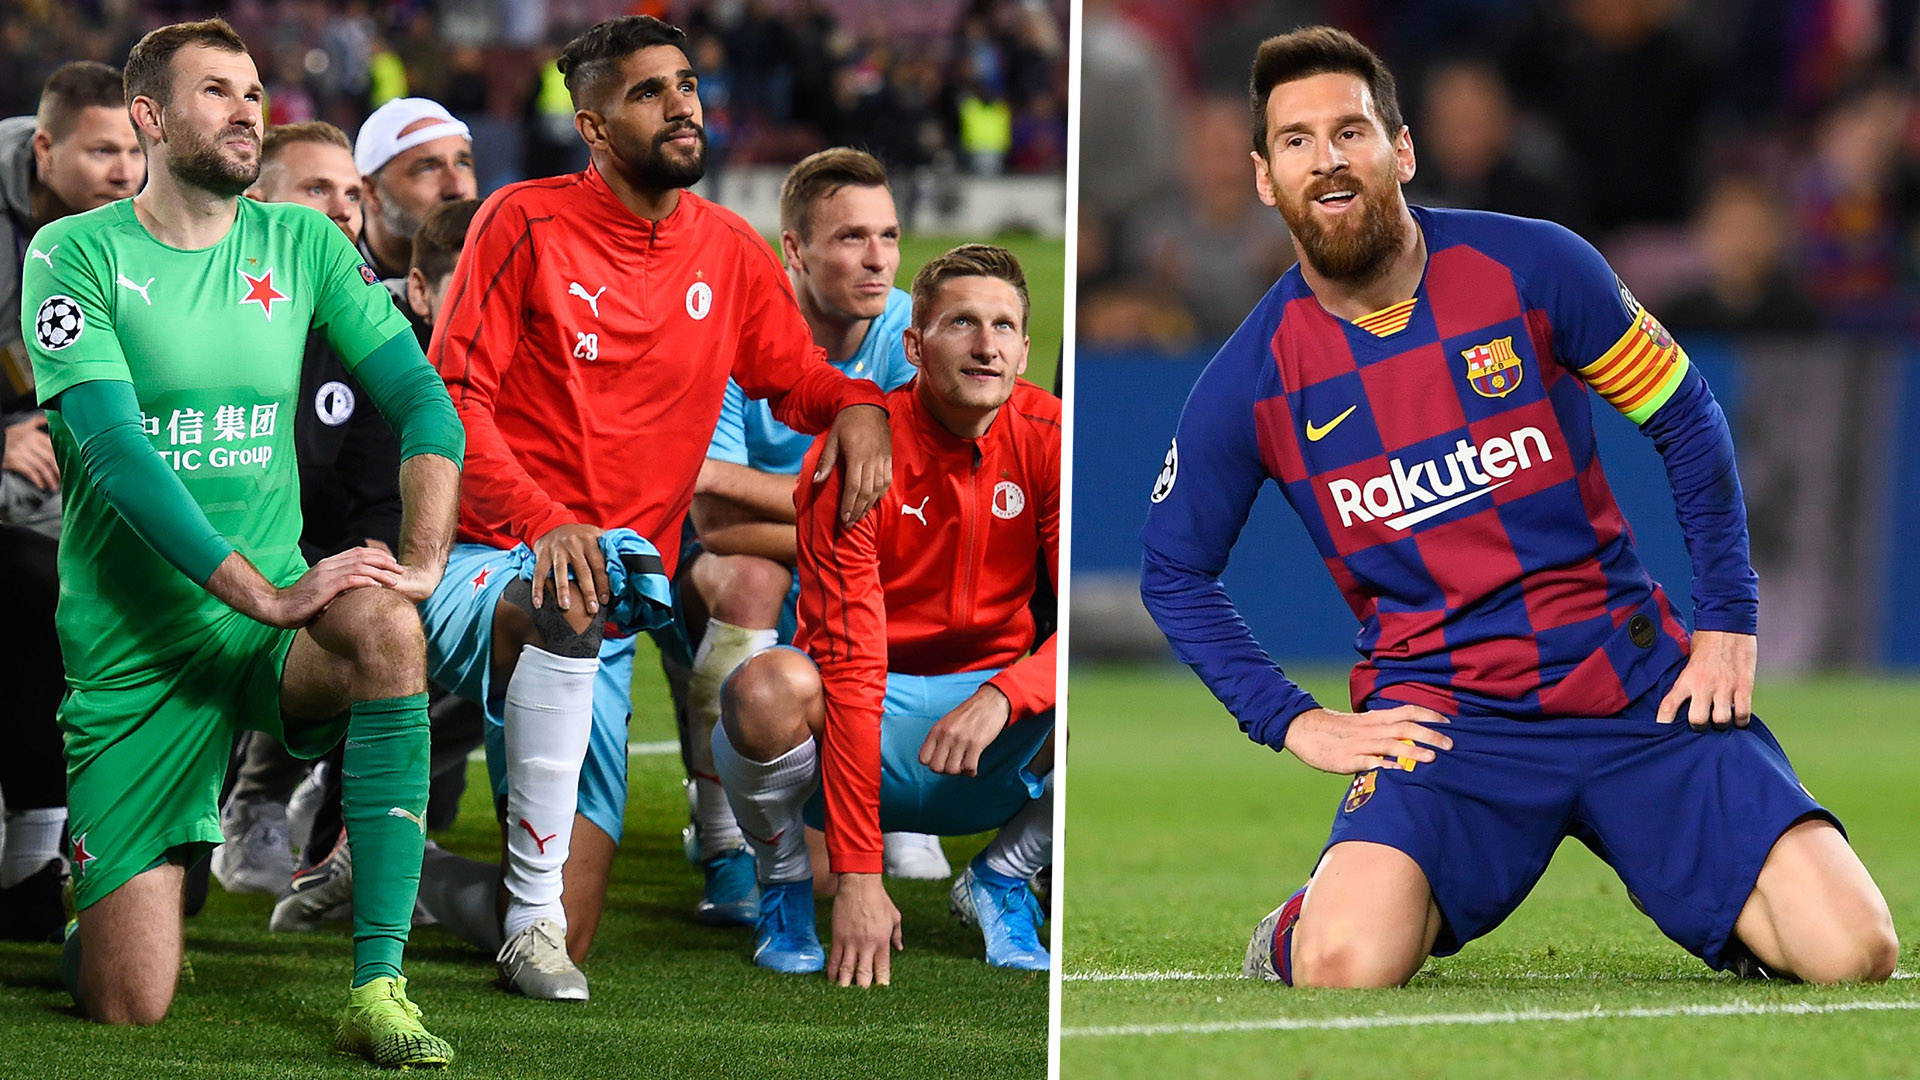 'Messi & the others just left!' - Slavia hero Kolar unhappy with behaviour of Barcelona stars after 0-0 draw